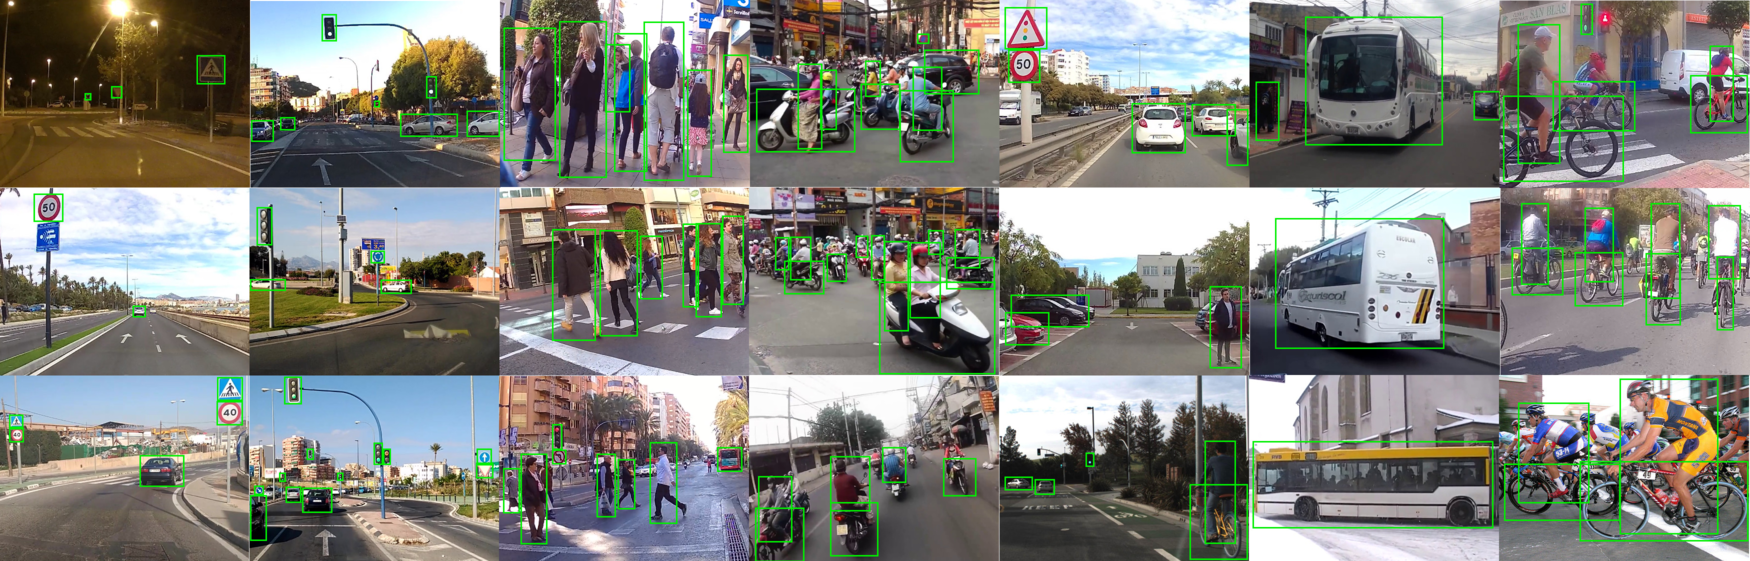 Urban Object Detection Dataset